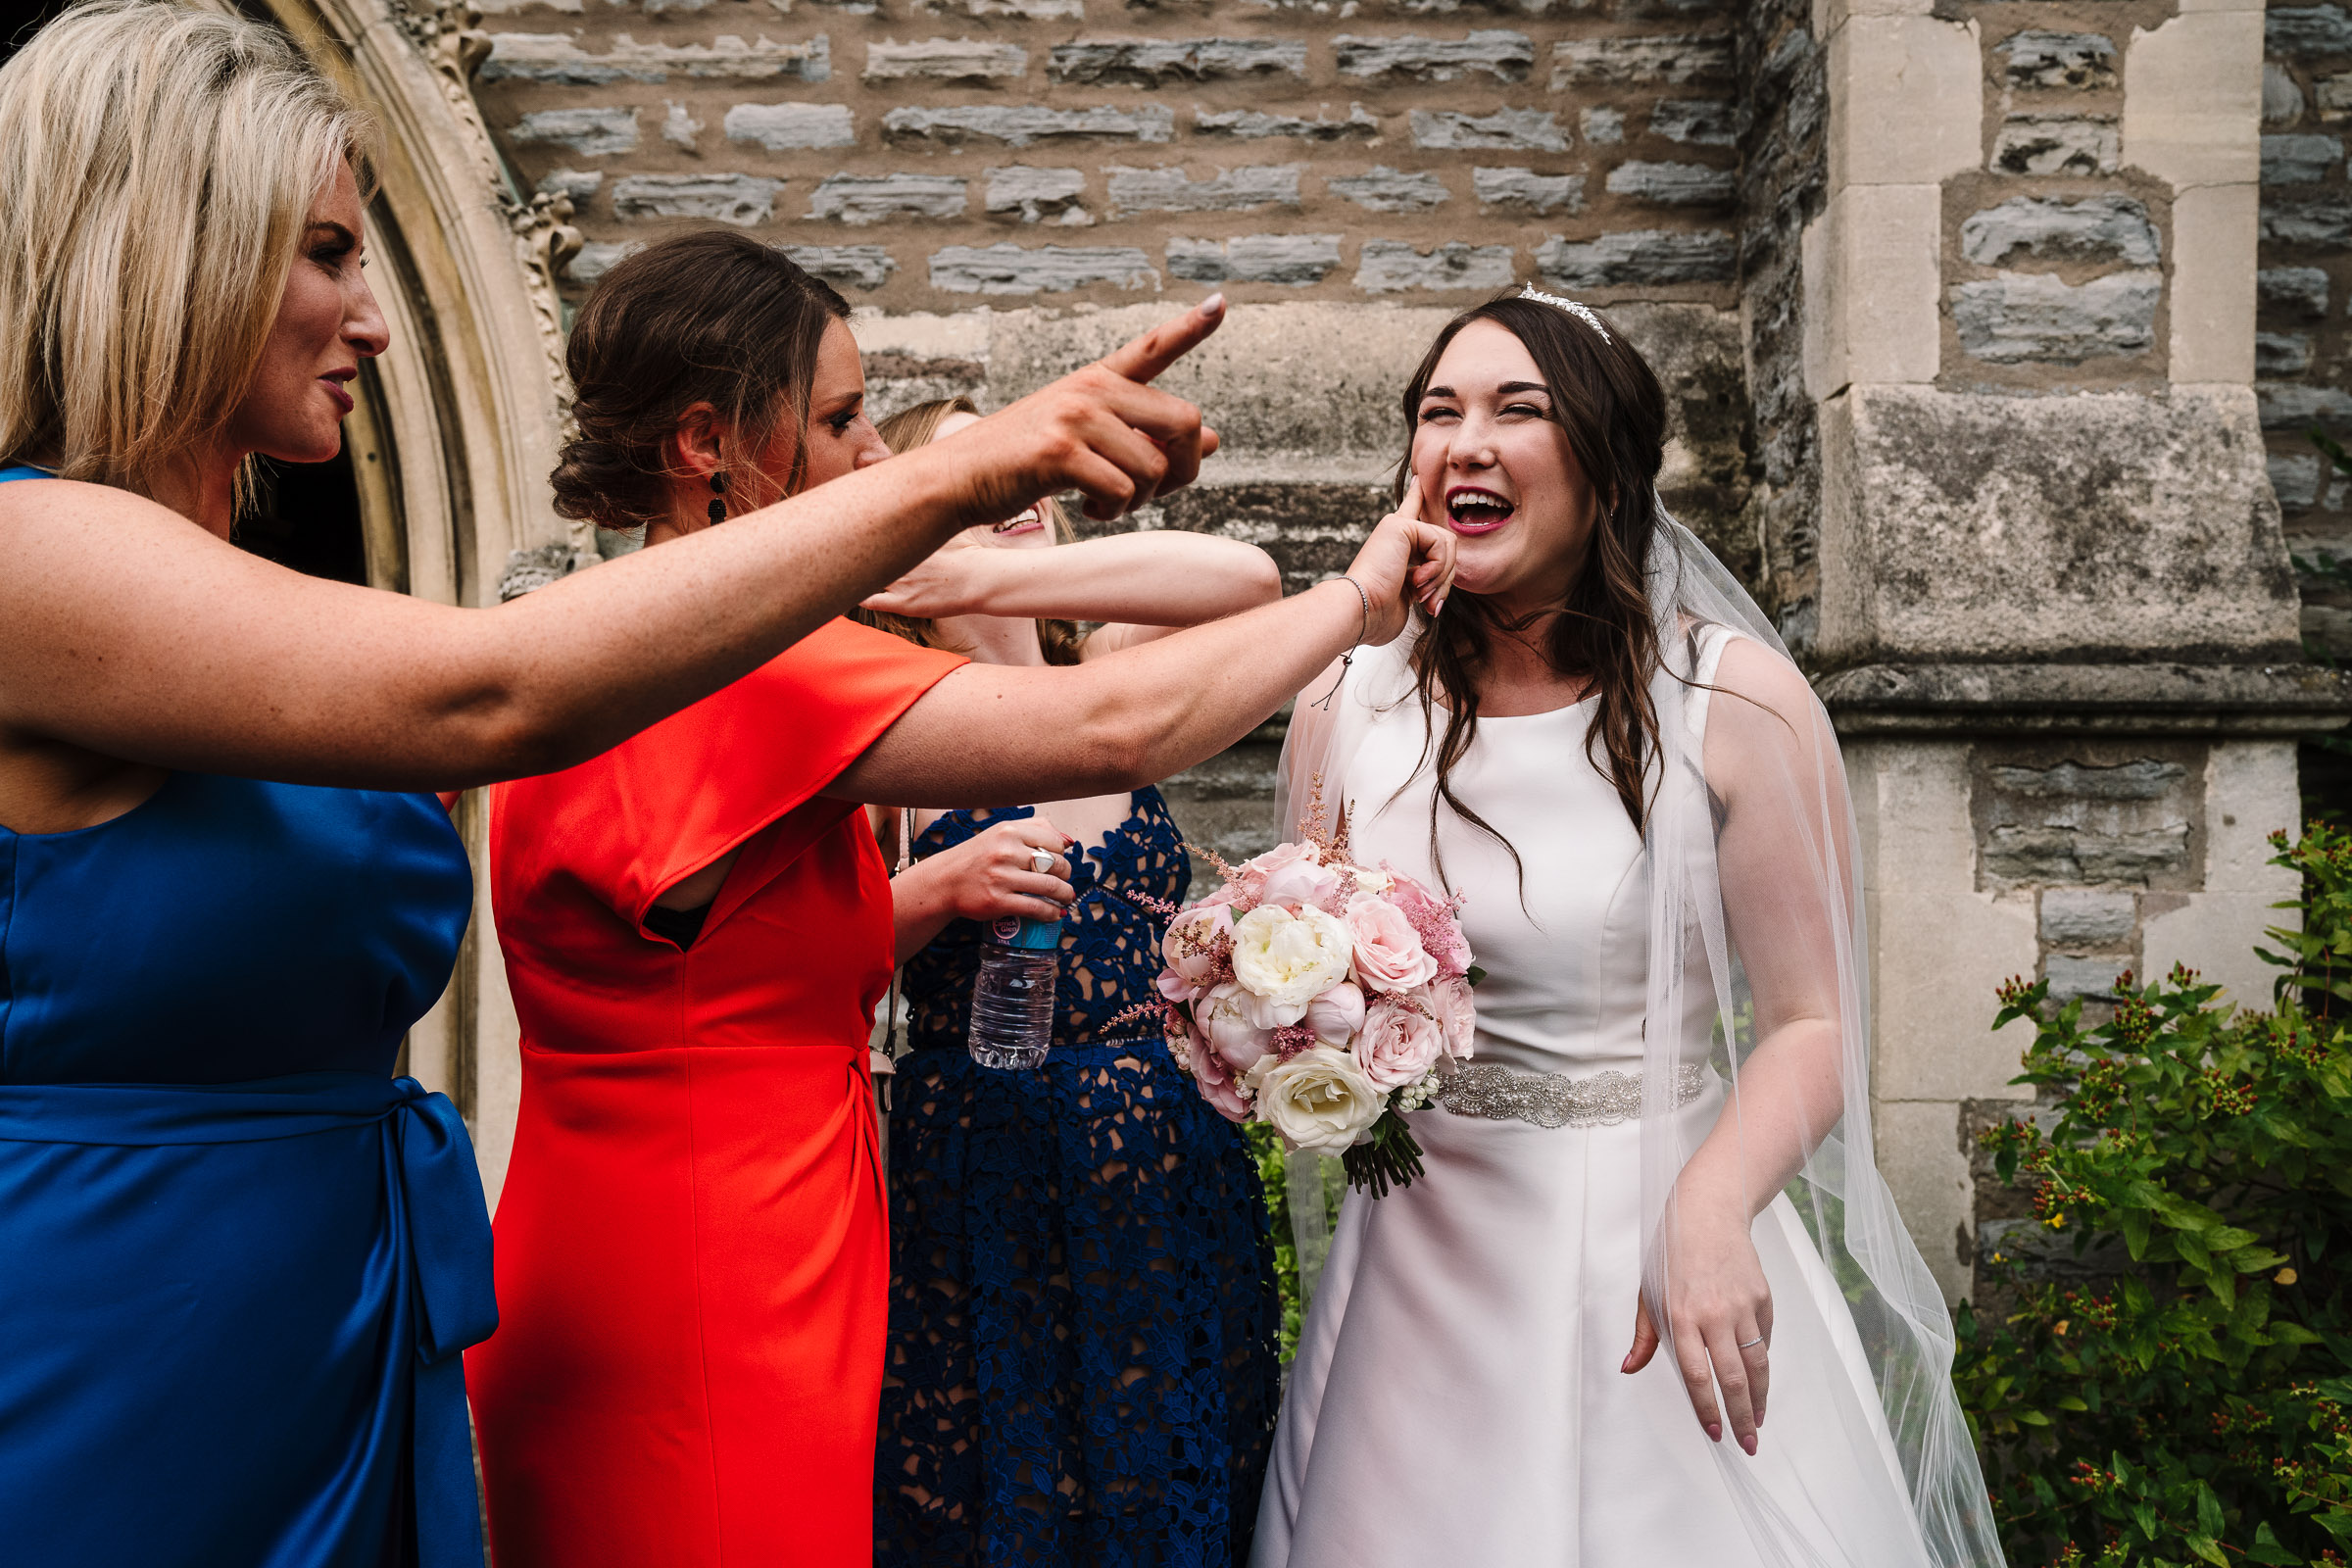 guests wiping lipstick off brides face after kissing her